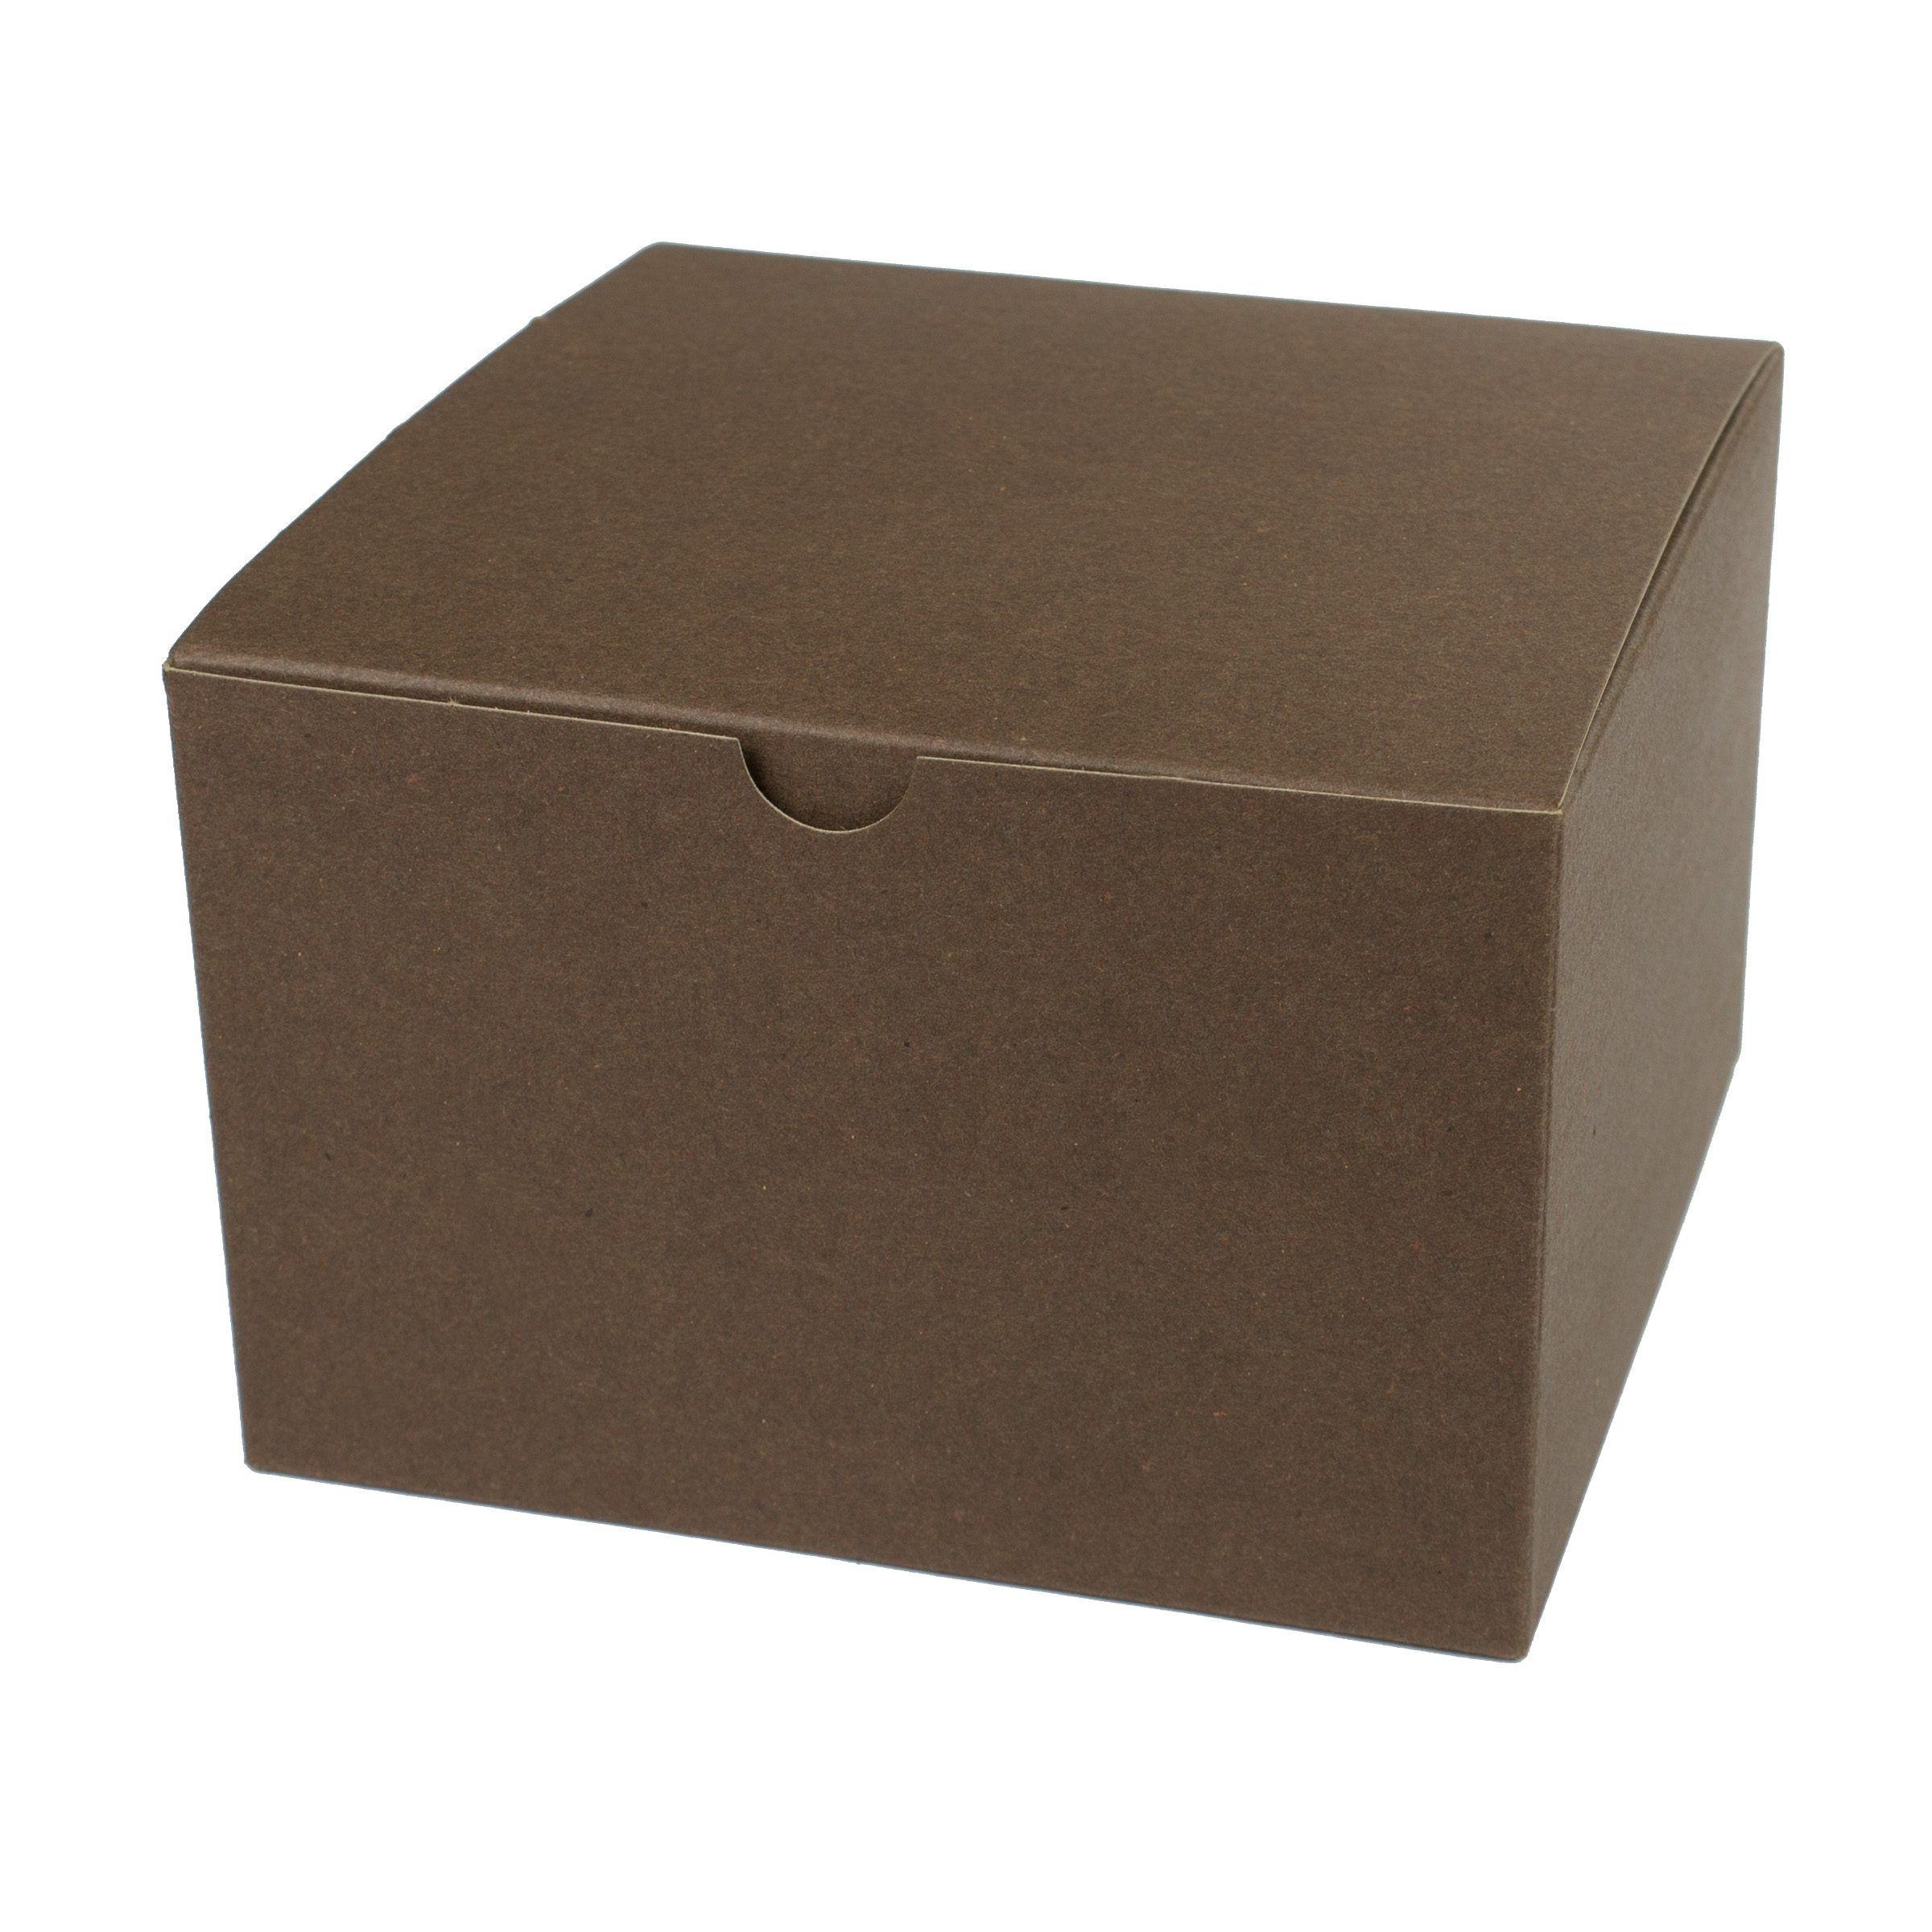 6 x 6 x 4 COCOA TINTED TUCK-TOP GIFT BOXES